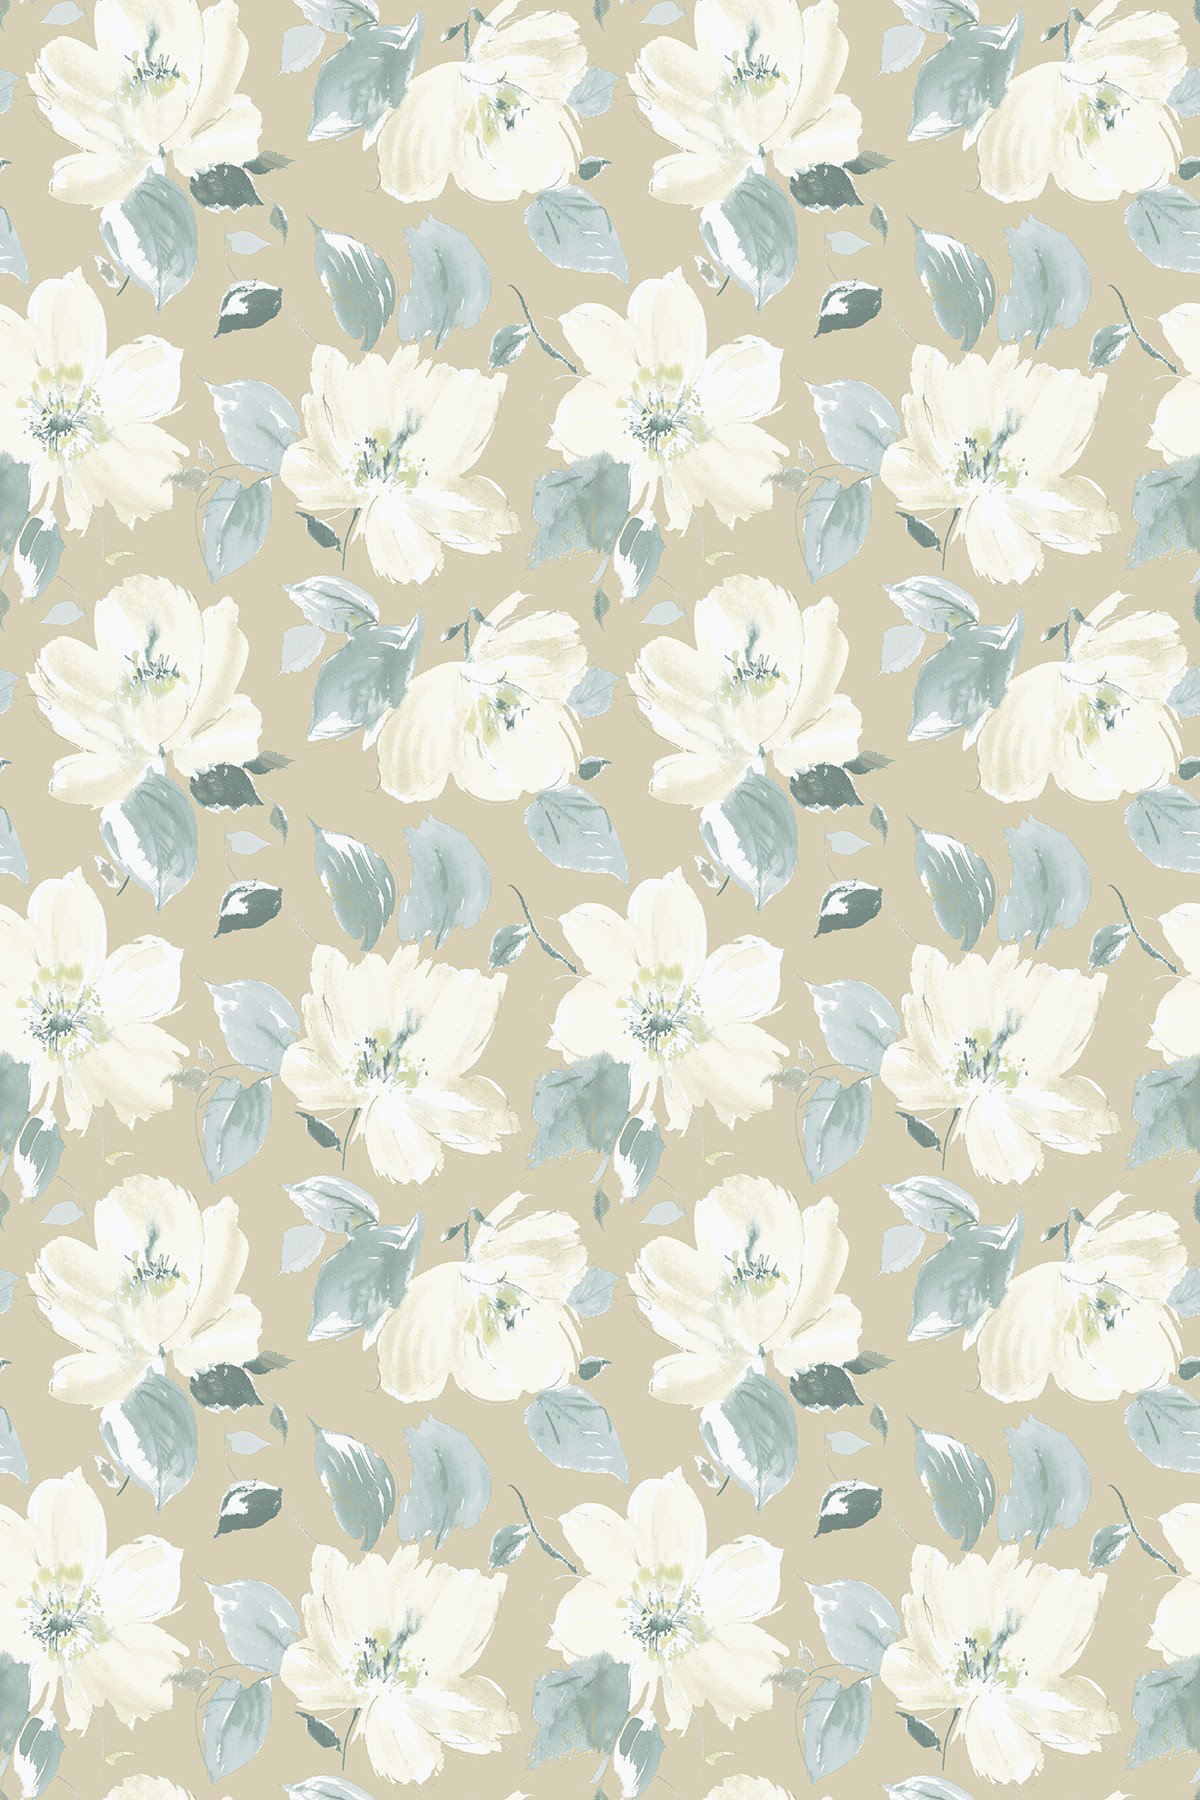 Image of Blendworth Fabric Lillie, LILLIE 3